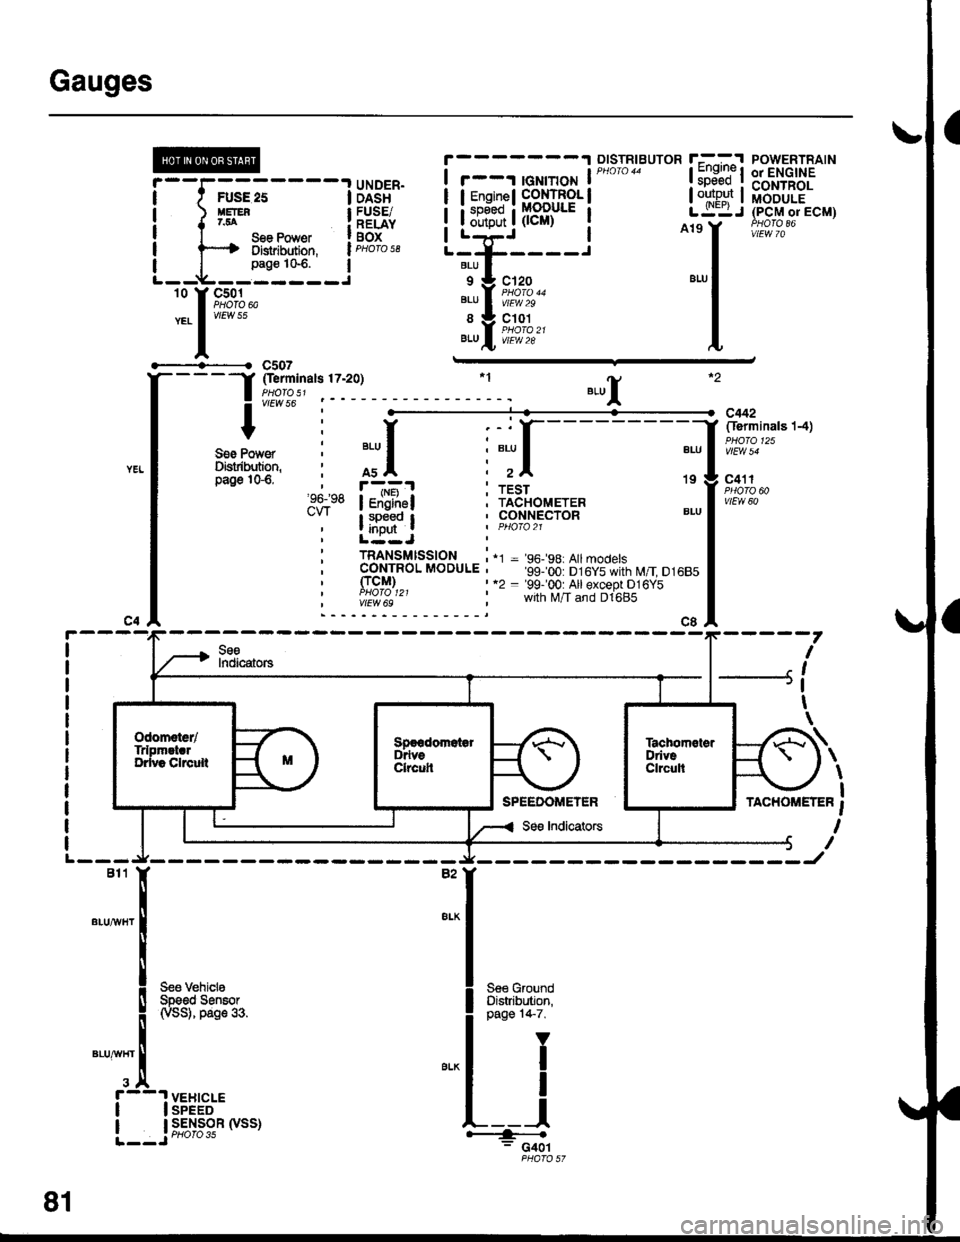 [WRG-7916] Mercedes Ml350 Fuse Box Diagram